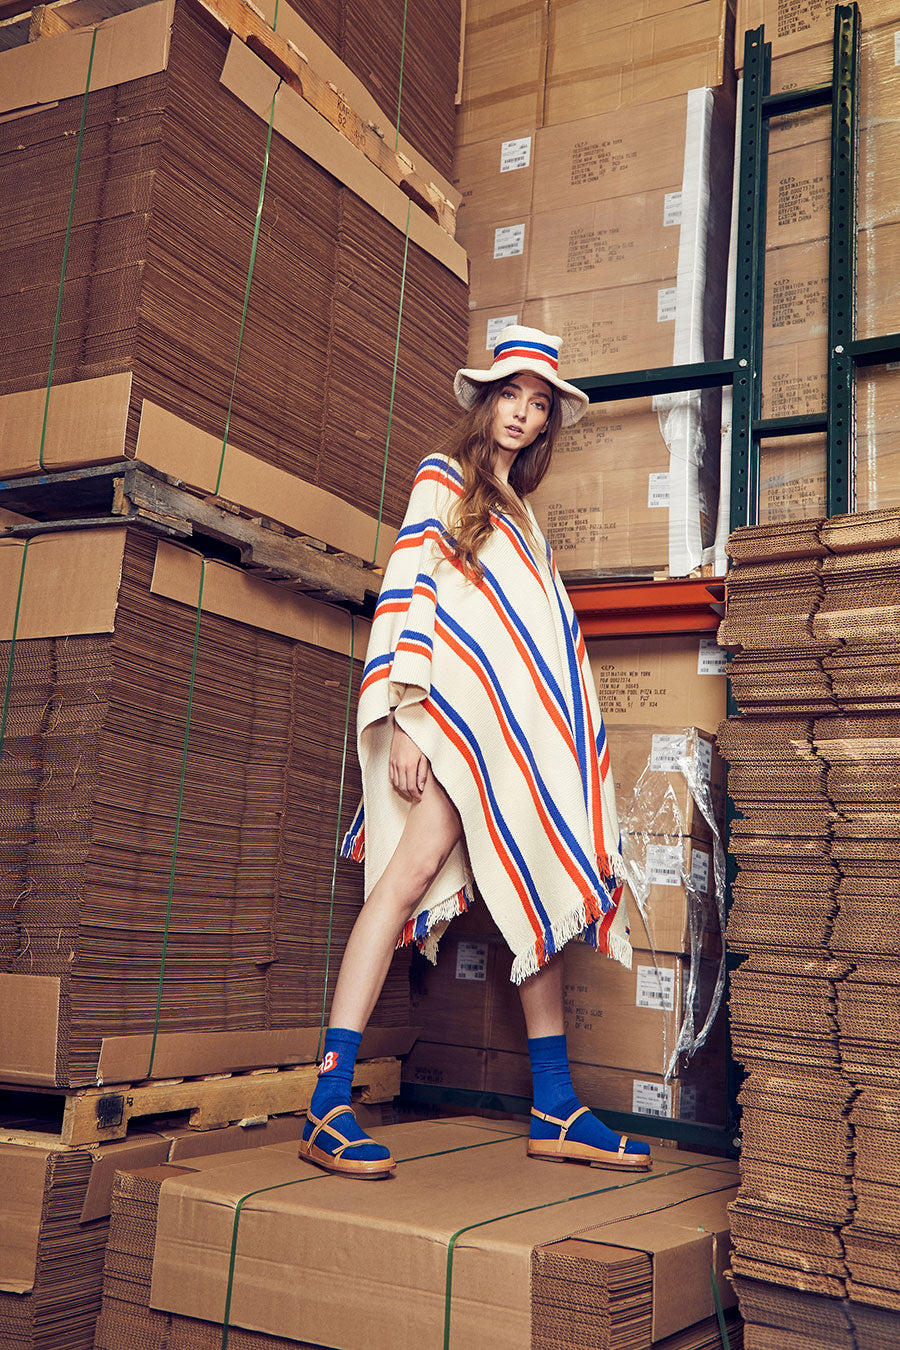 Lookbook model with Raquel poncho and FAB blue socks